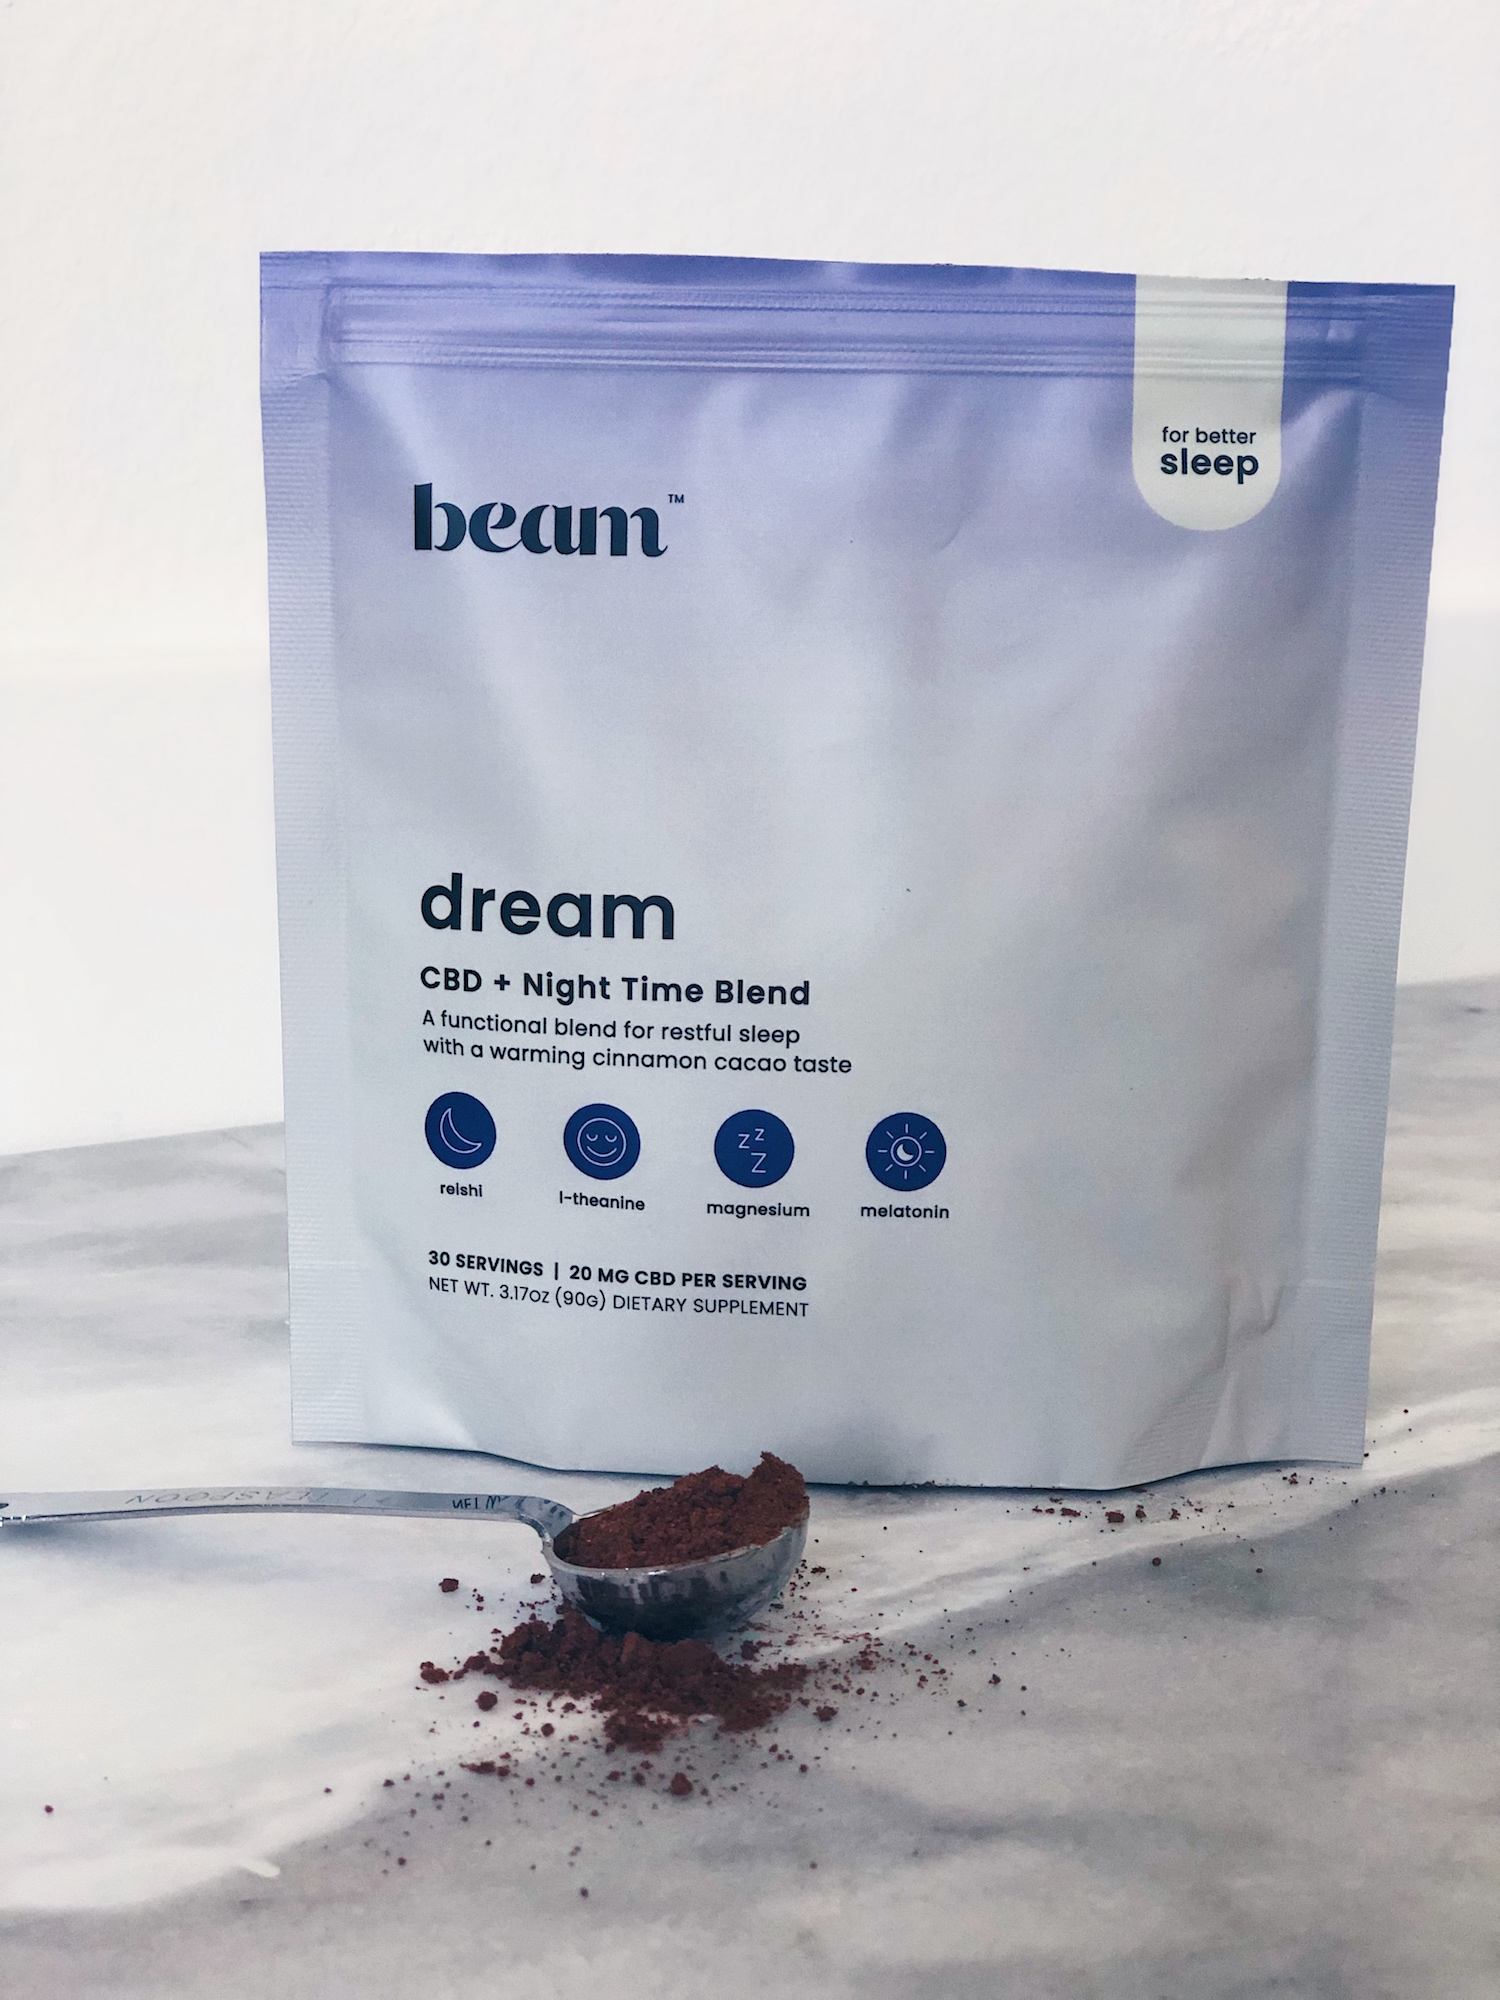 cbd-beam-dream-powder-wu-haus